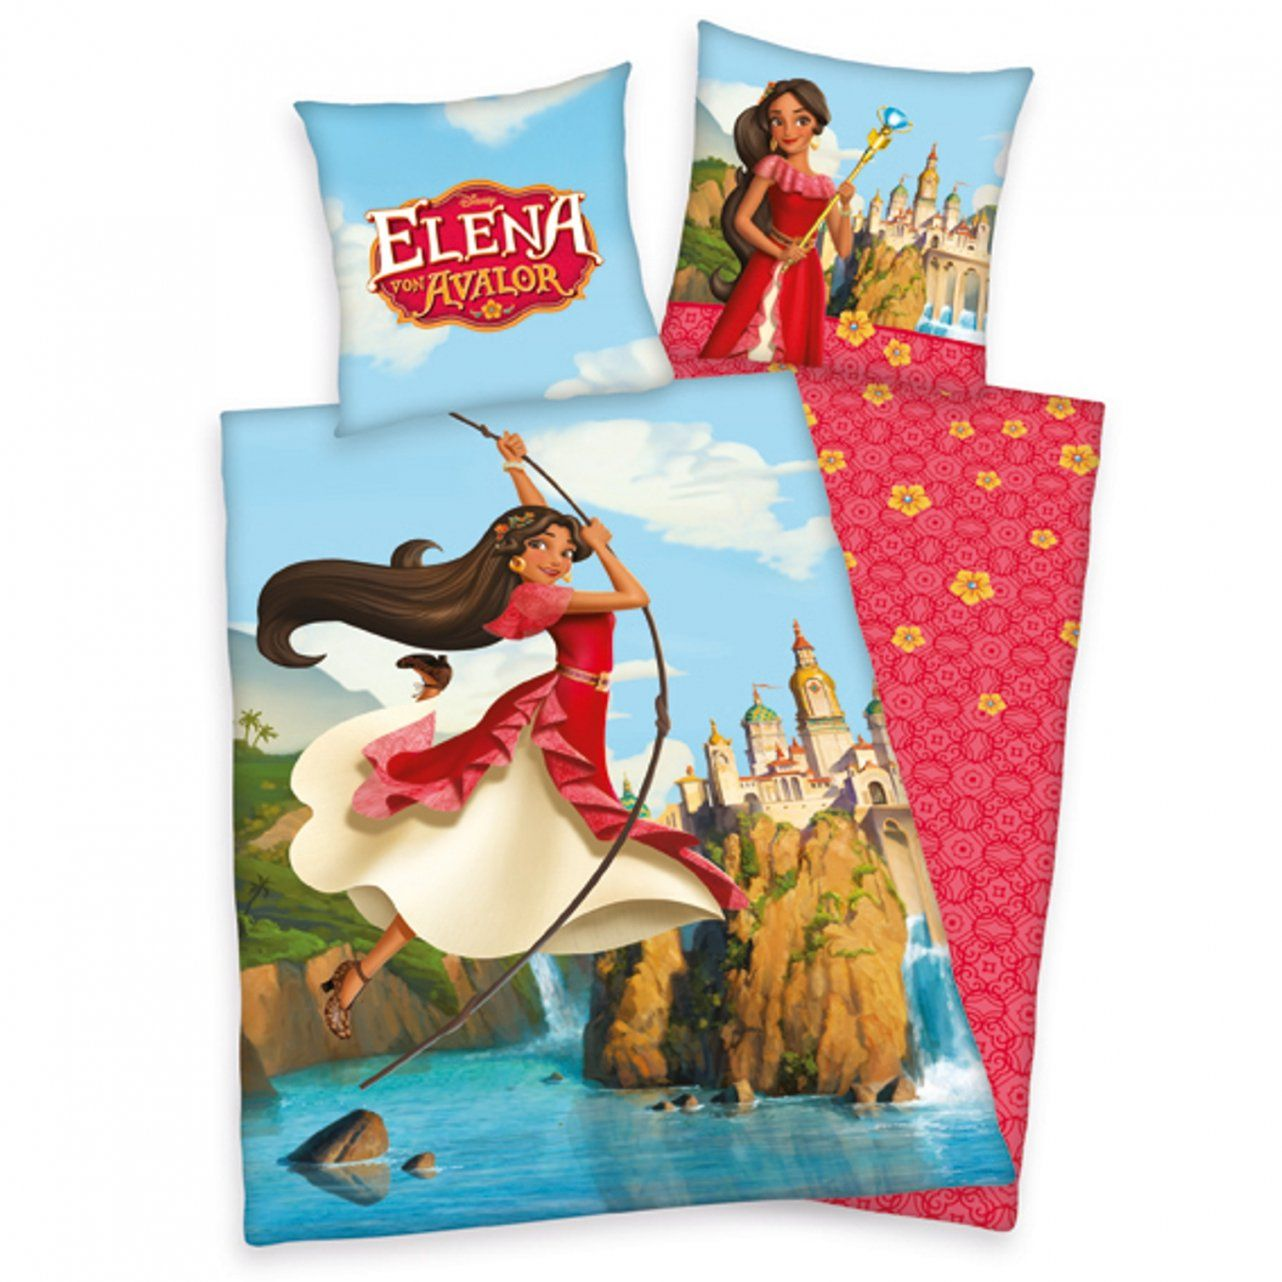 Bettwasche Minnie Mouse Bettw Sche Set Disney Minnie Maus 140x200